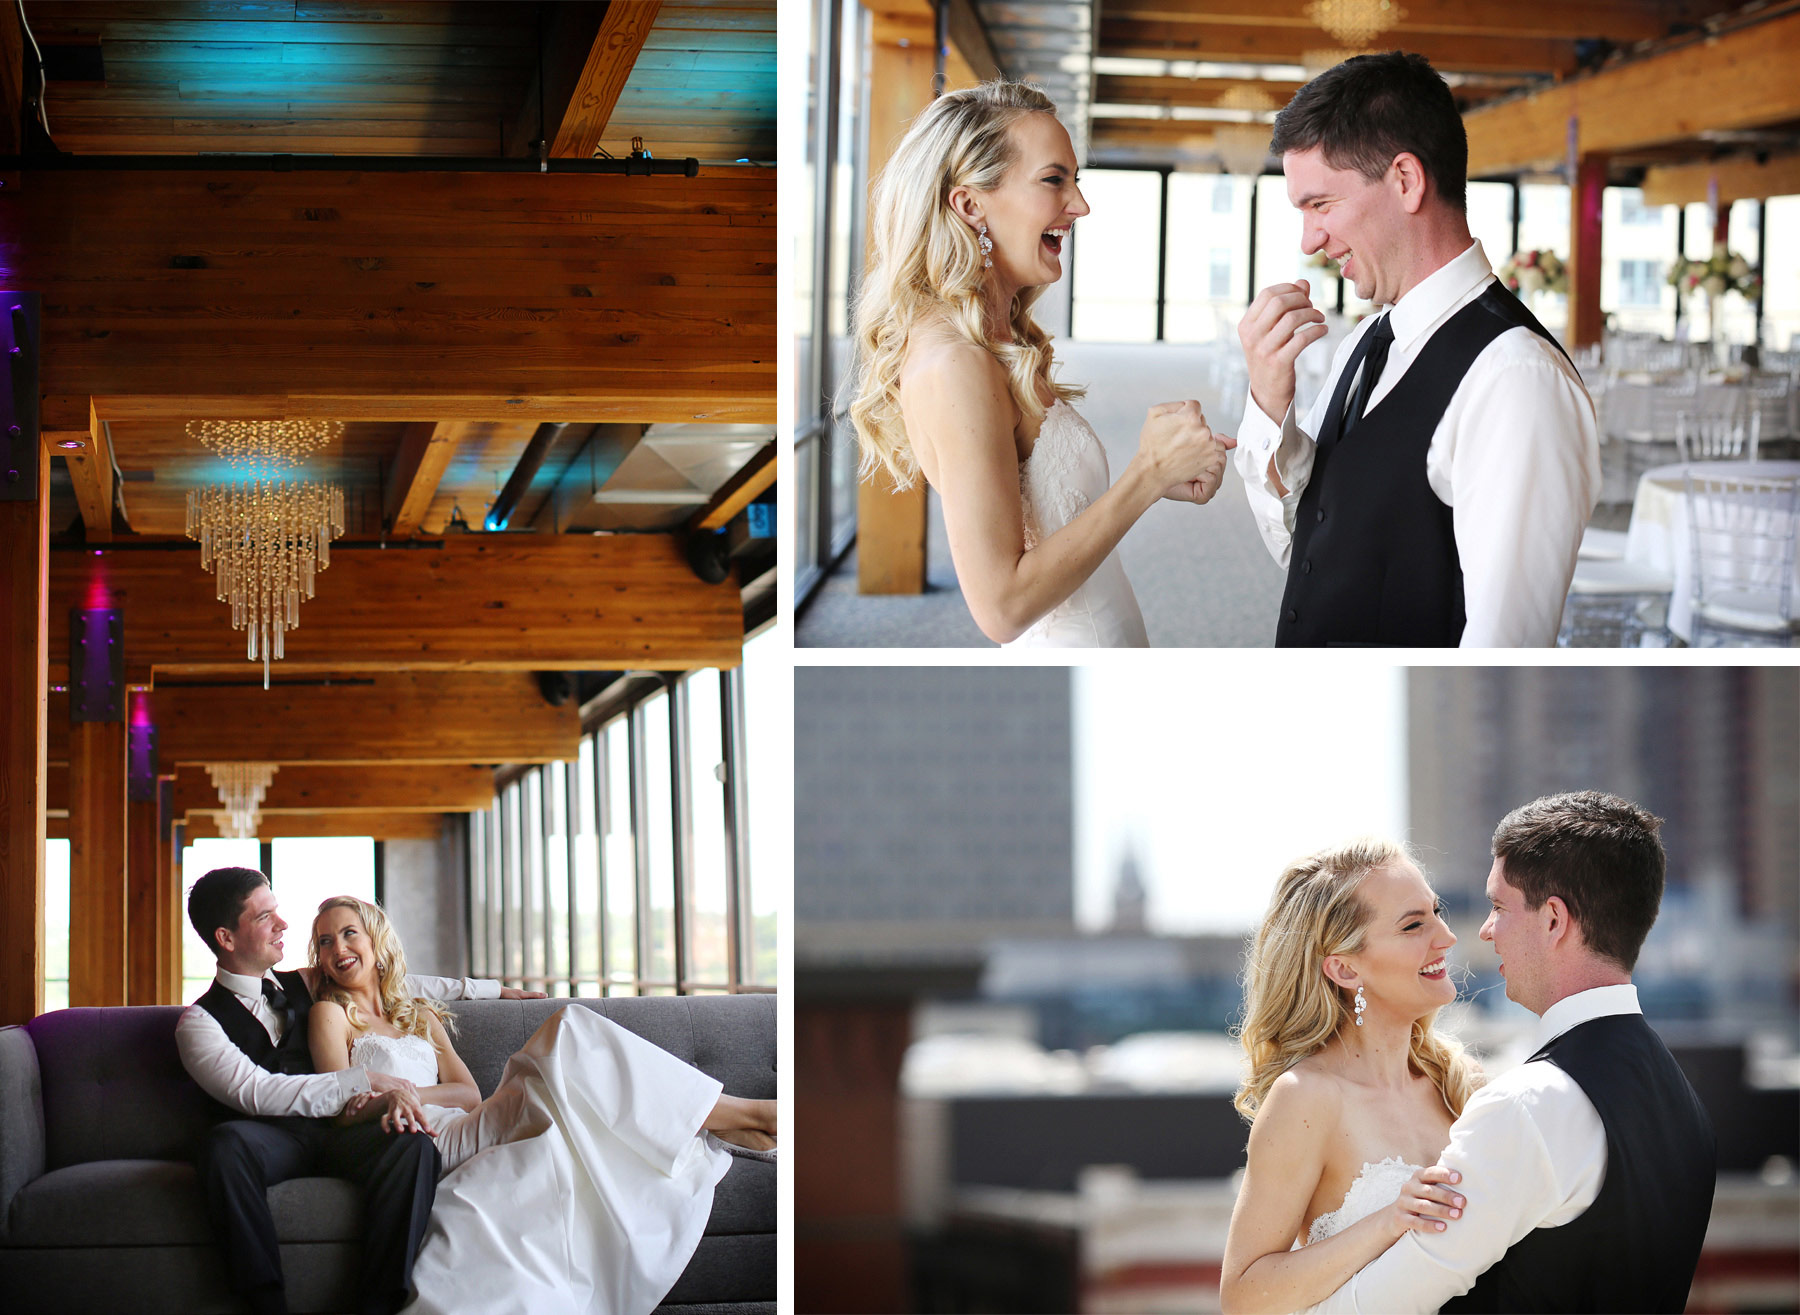 06-Saint-Paul-Minnesota-Wedding-Photographer-by-Andrew-Vick-Photography-Summer-Abulae-Bride-Groom-First-Meeting-Laughing-Embrace-Laura-and-Tim.jpg